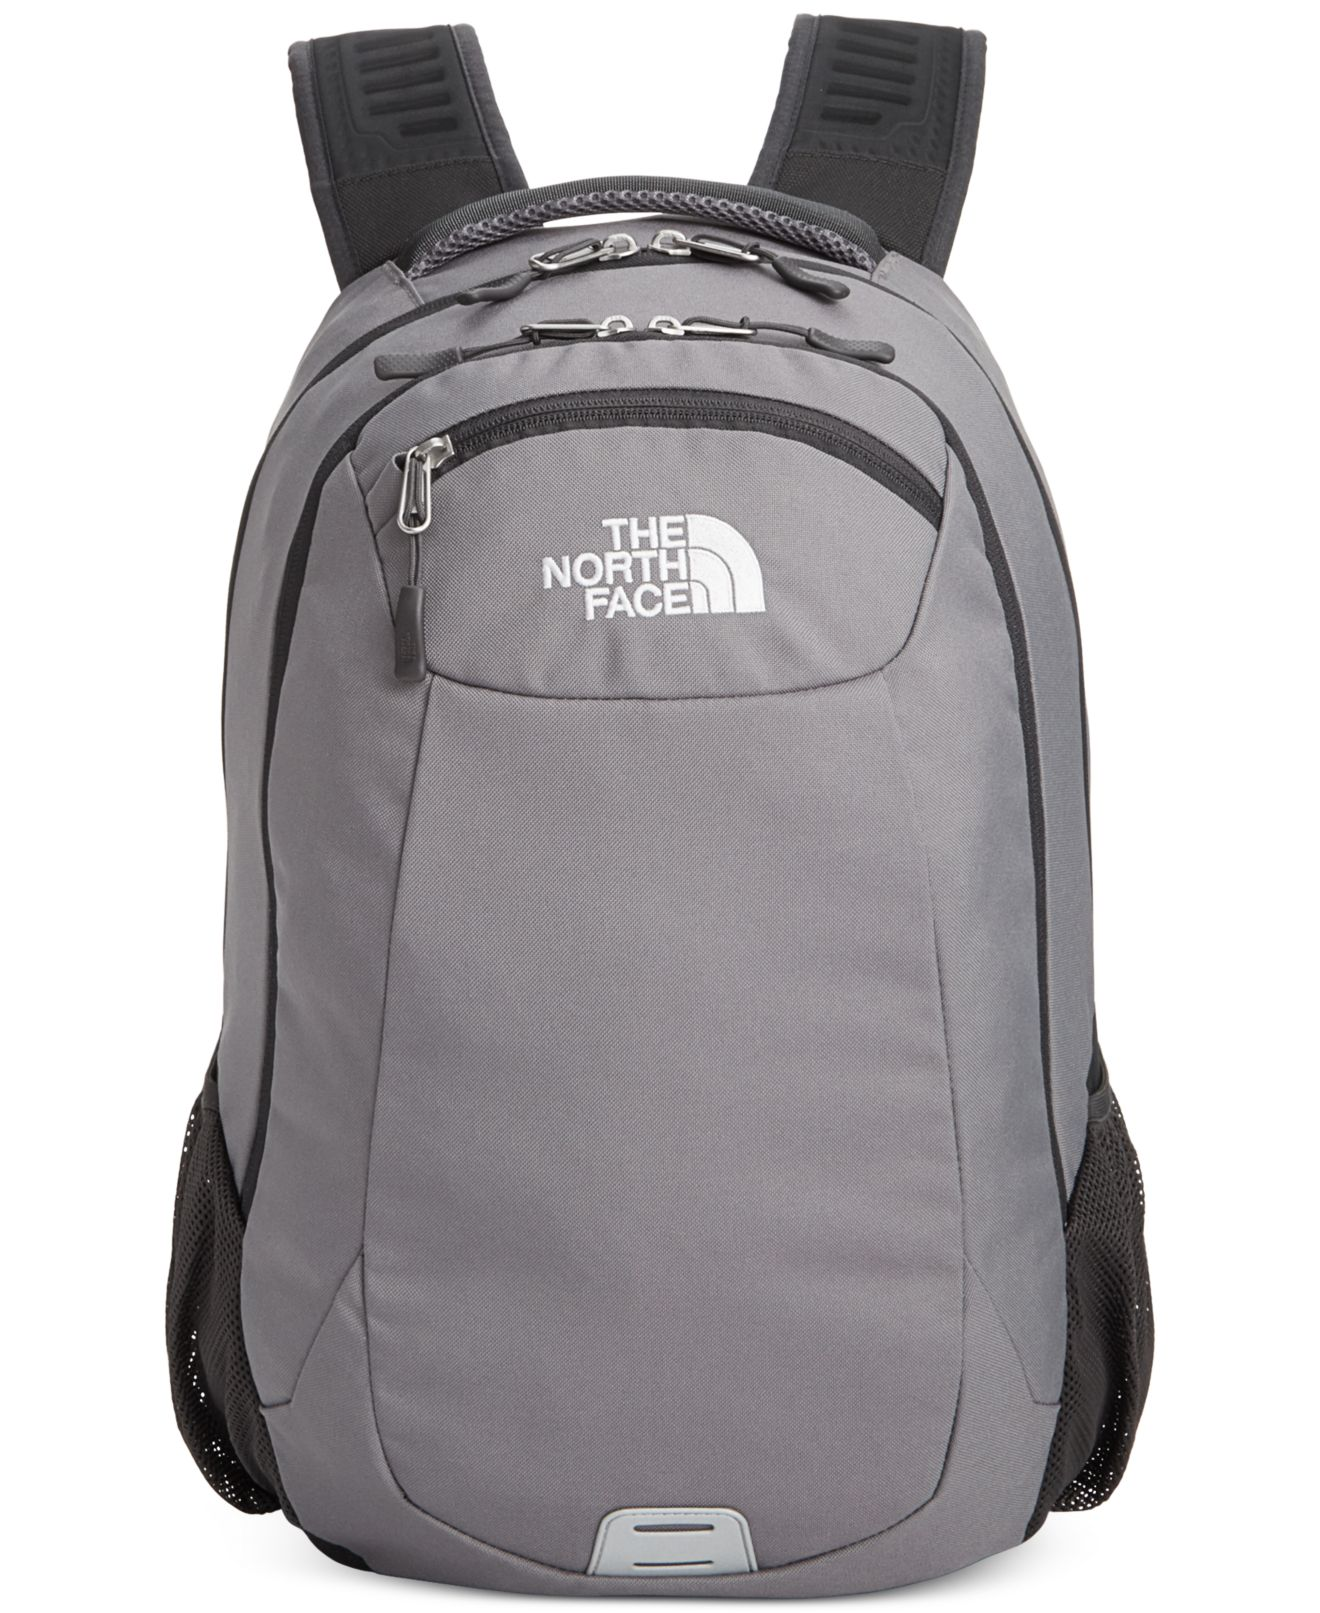 North Face Backpack Rain Cover The North Face Tallac Backpack